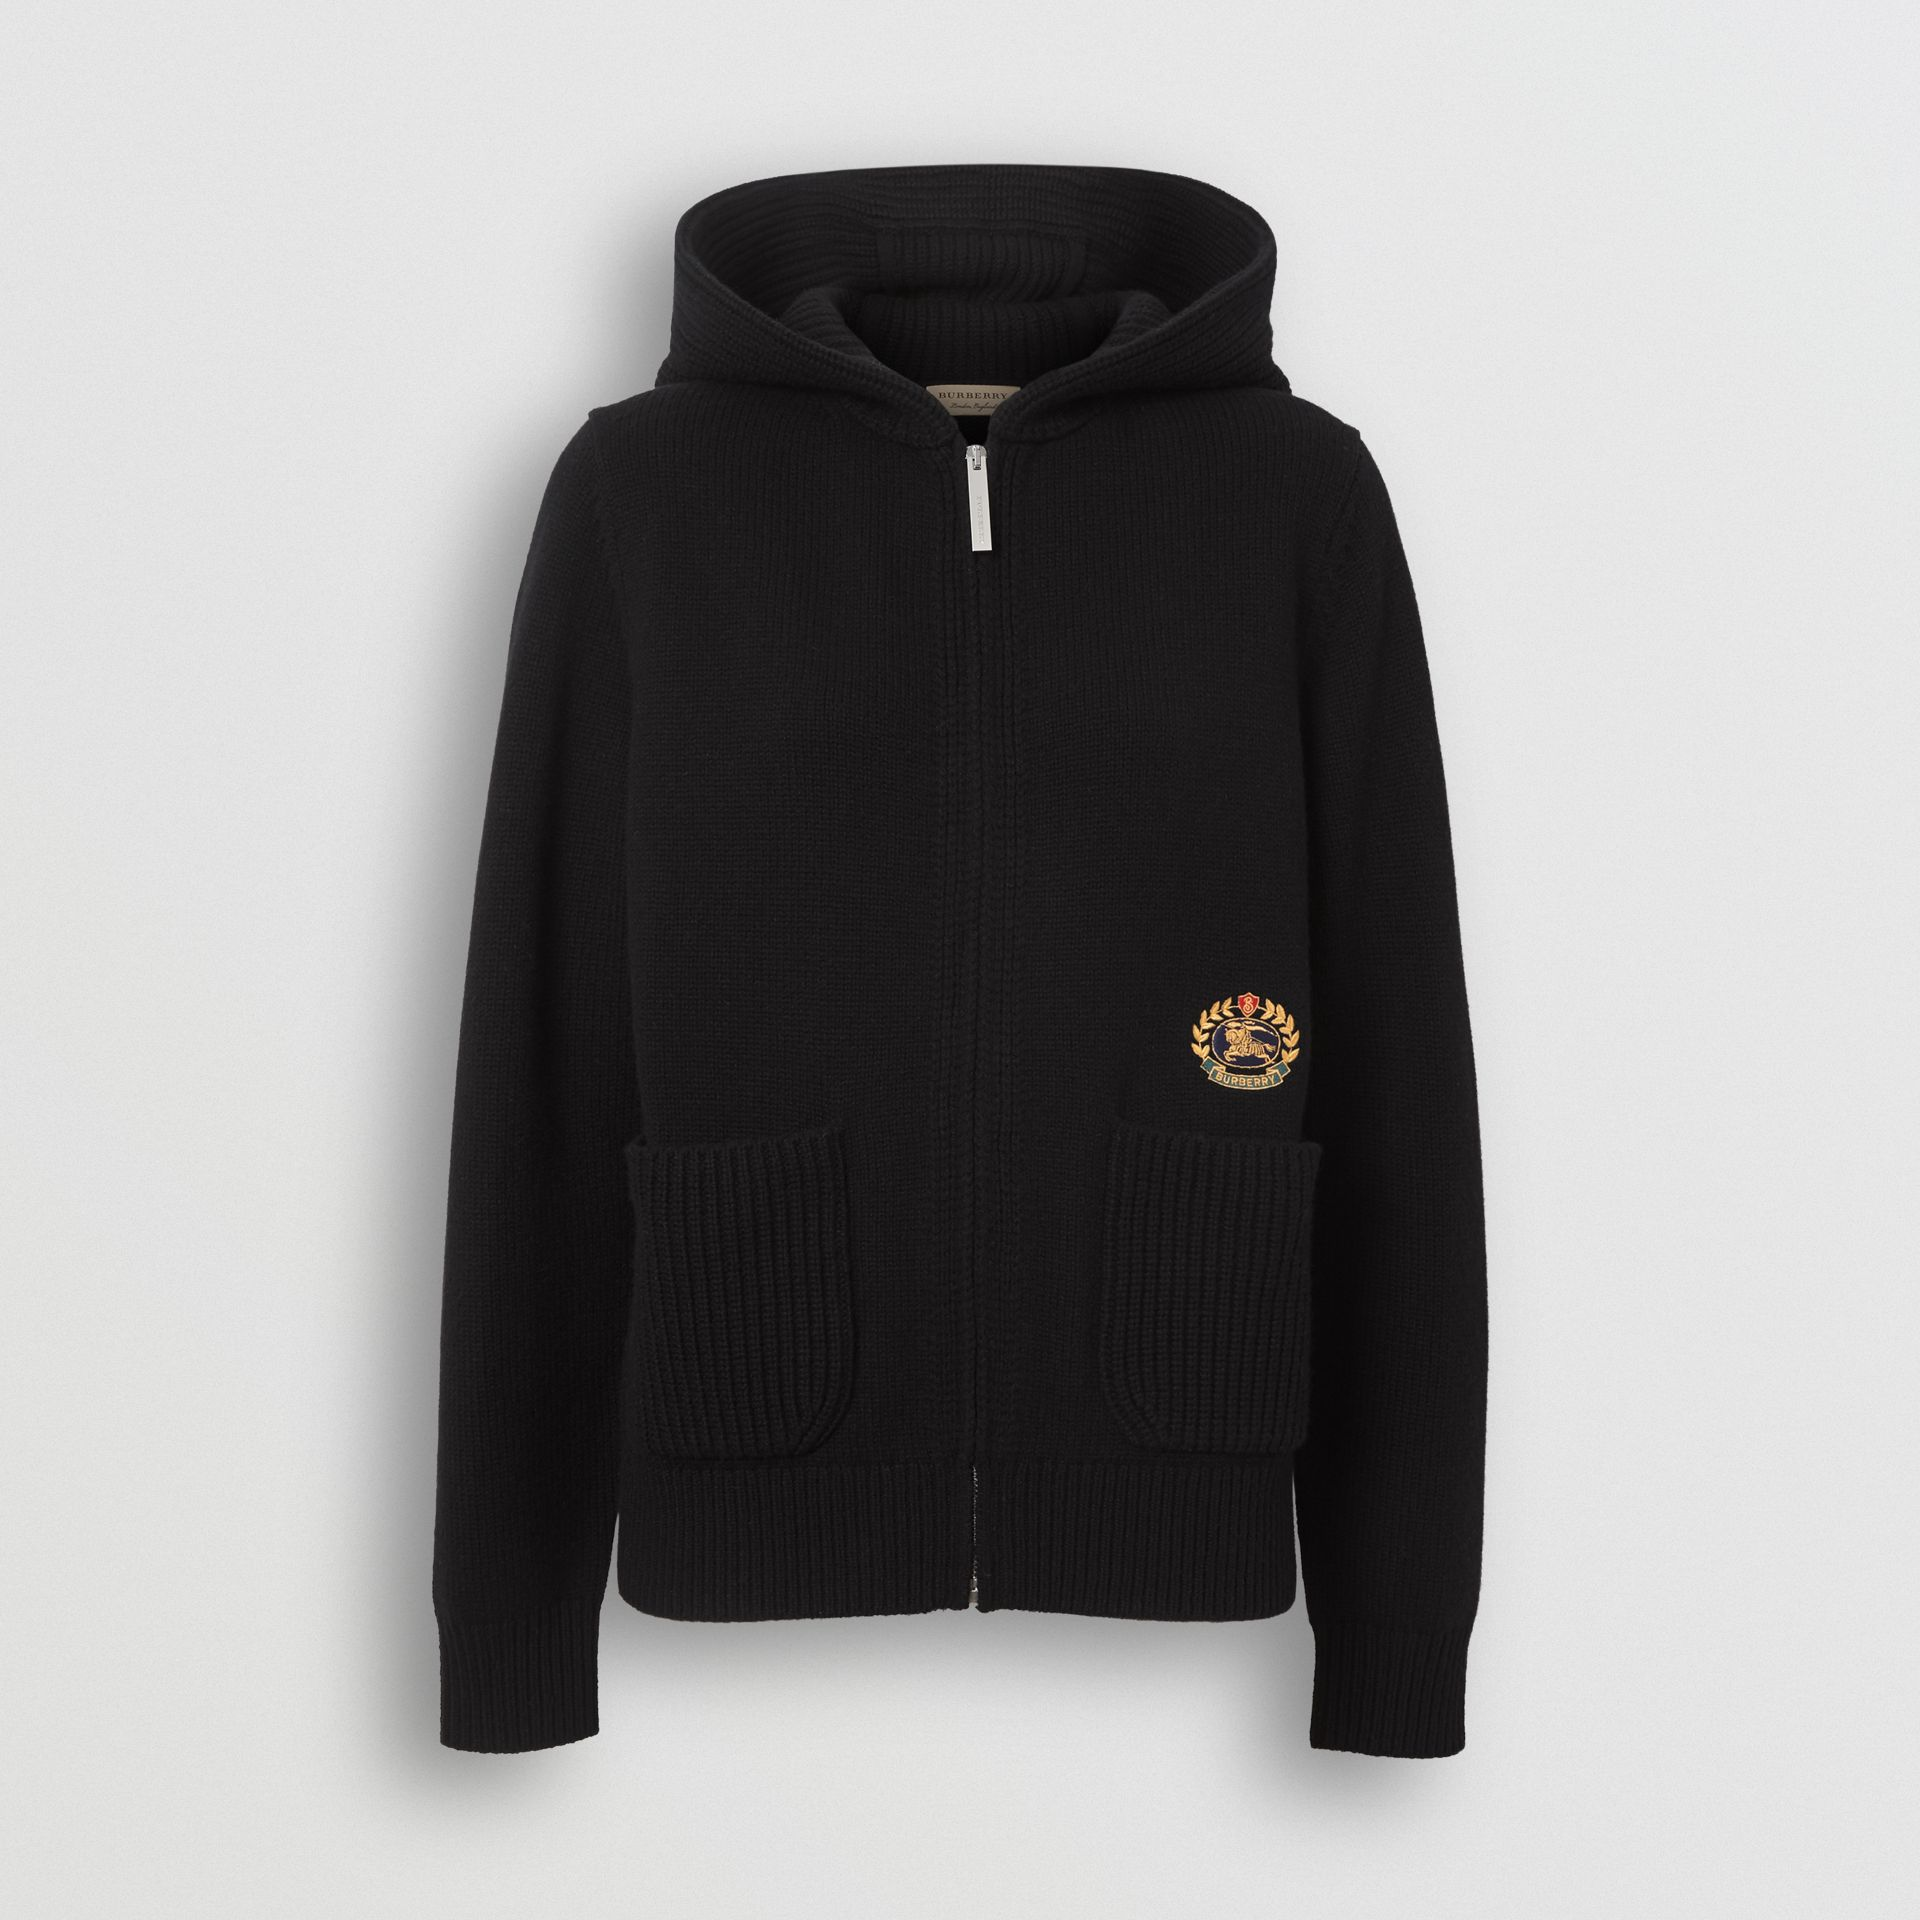 Embroidered Crest Cashmere Hooded Top in Black - Women | Burberry - gallery image 3